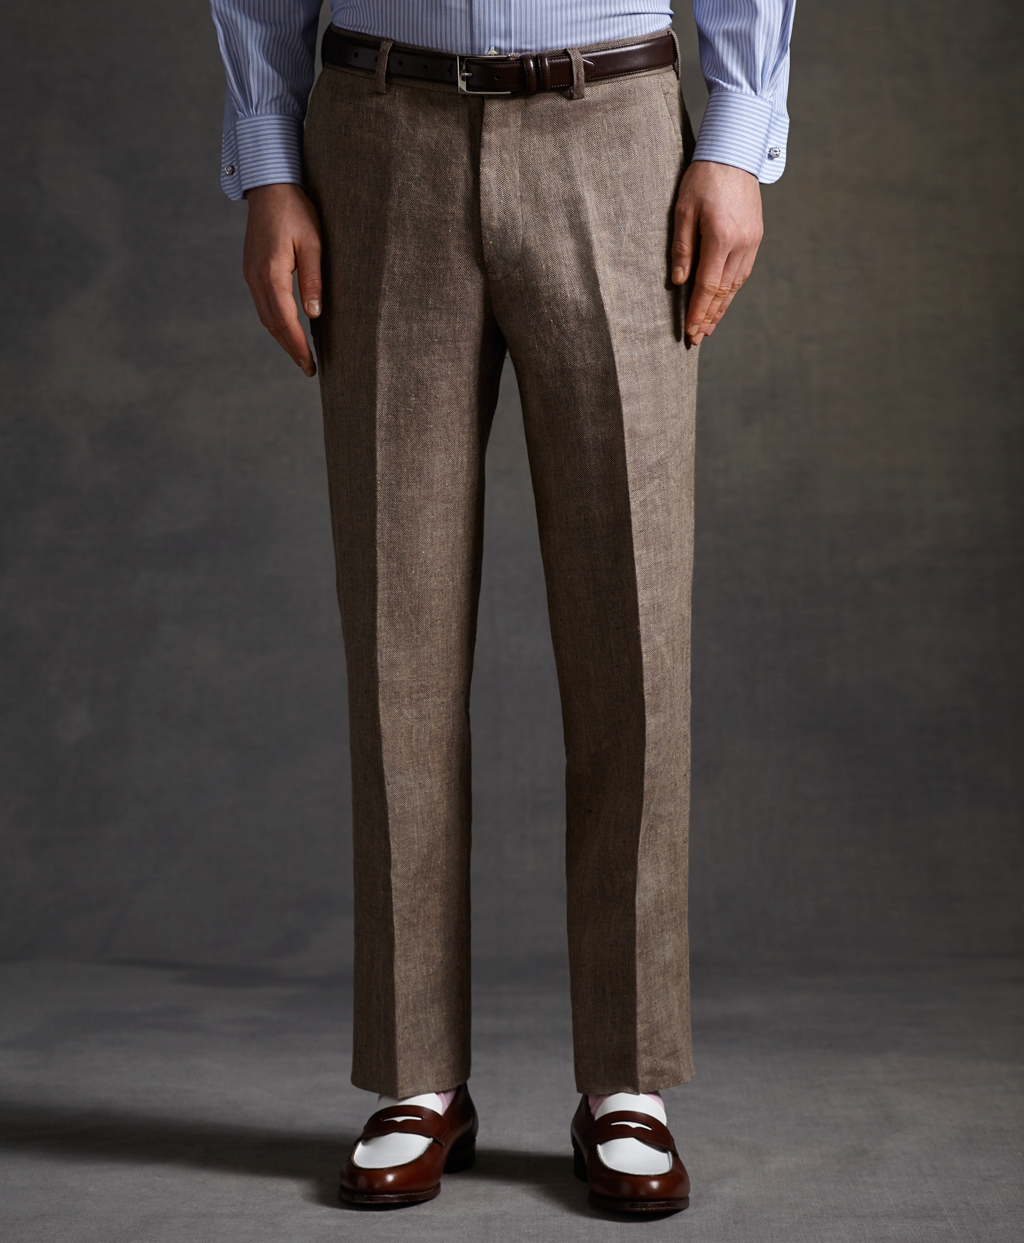 To acquire Brown light pants for men pictures trends